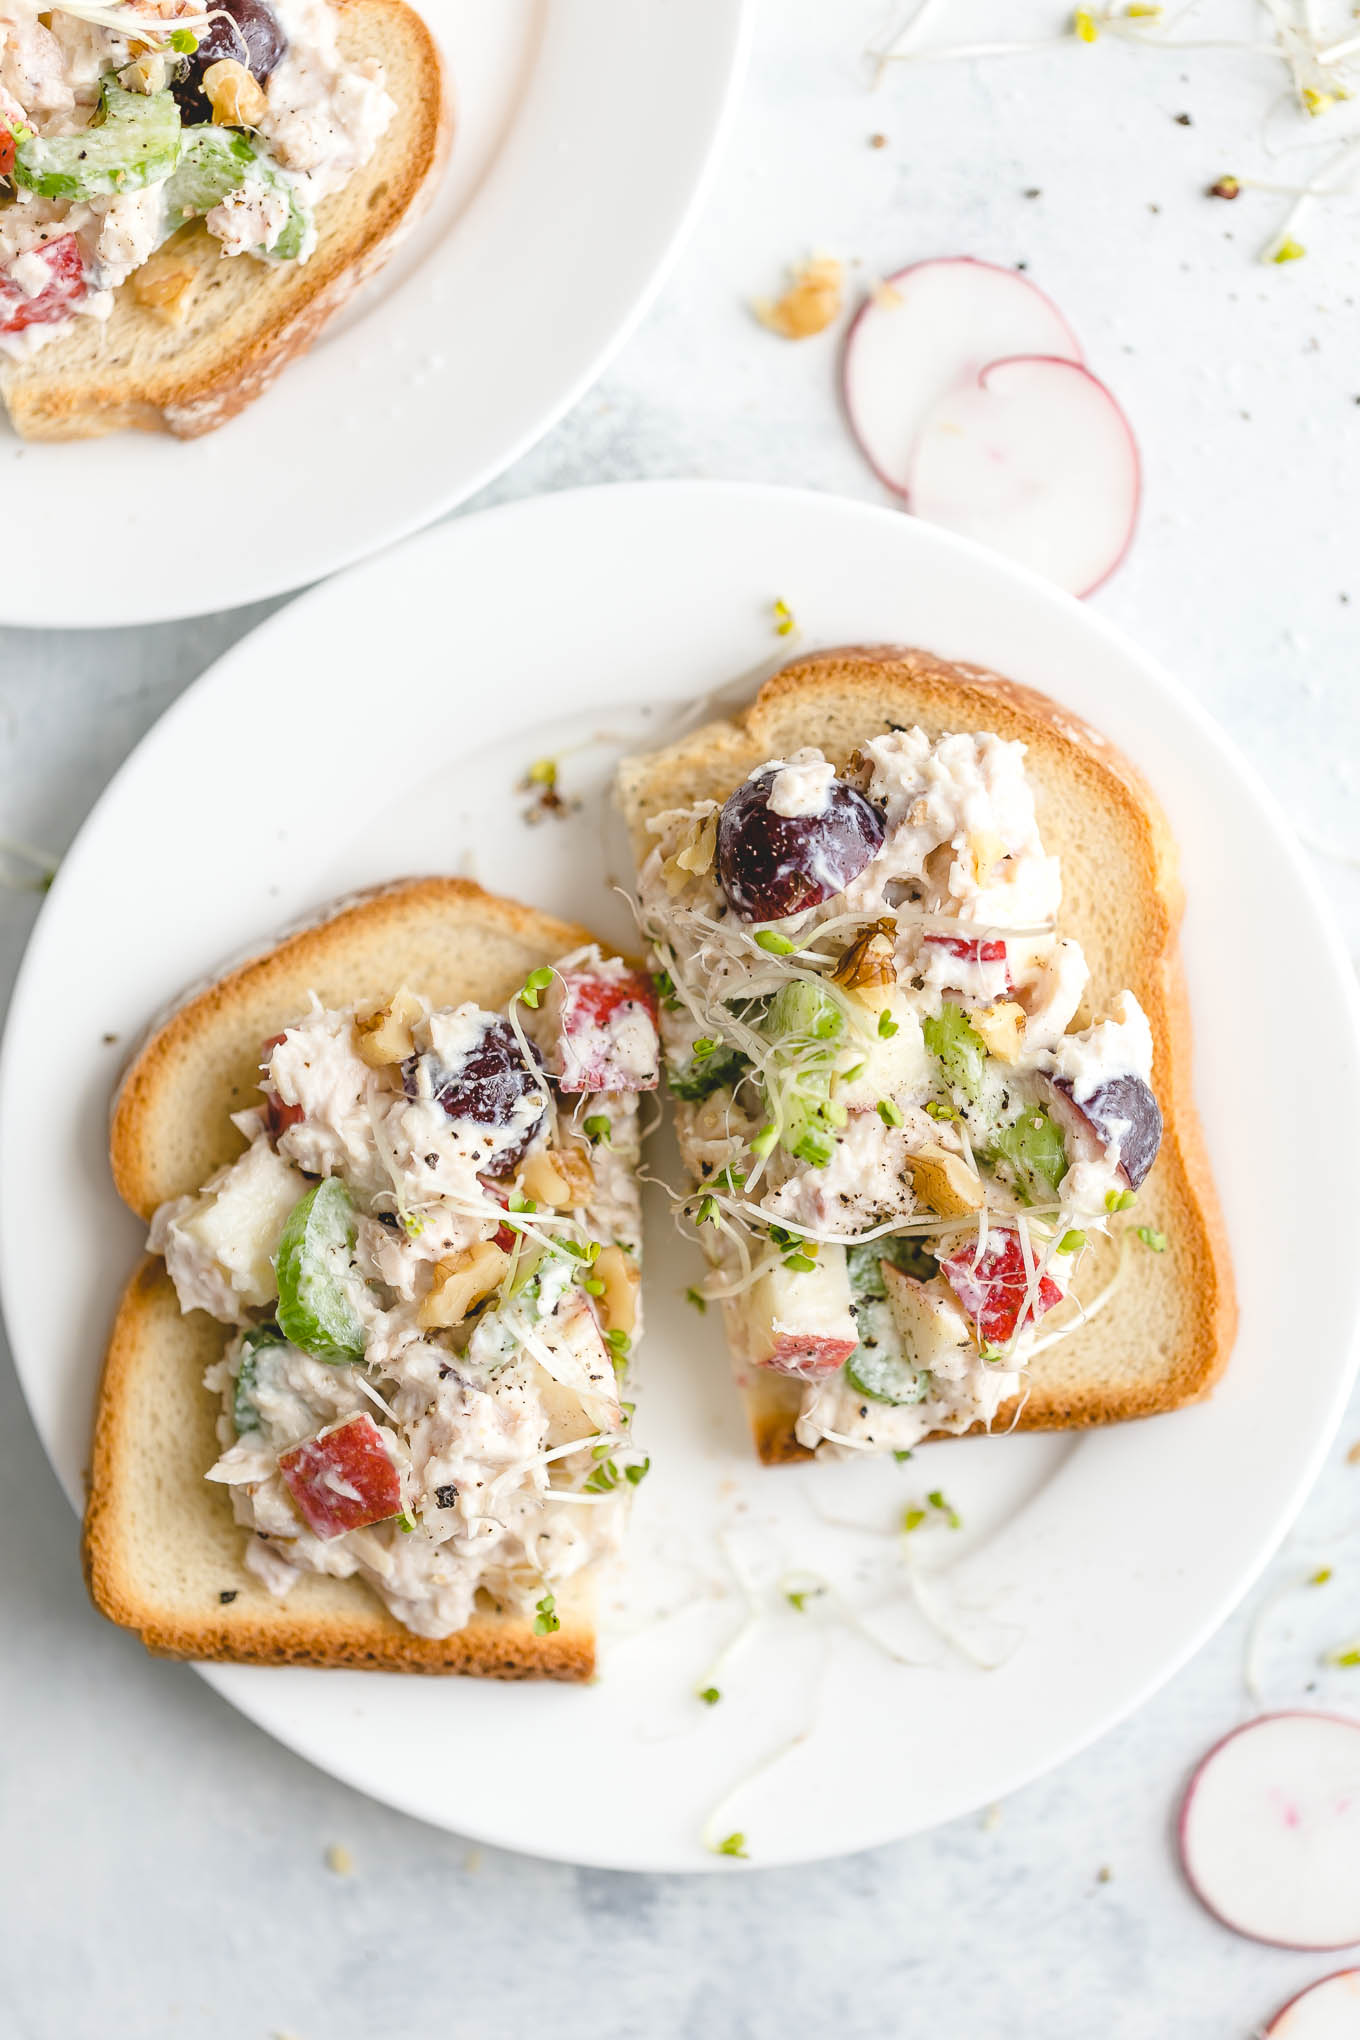 healthy tuna salad recipe with nonfat greek yogurt, apple, celery, grapes, and walnuts